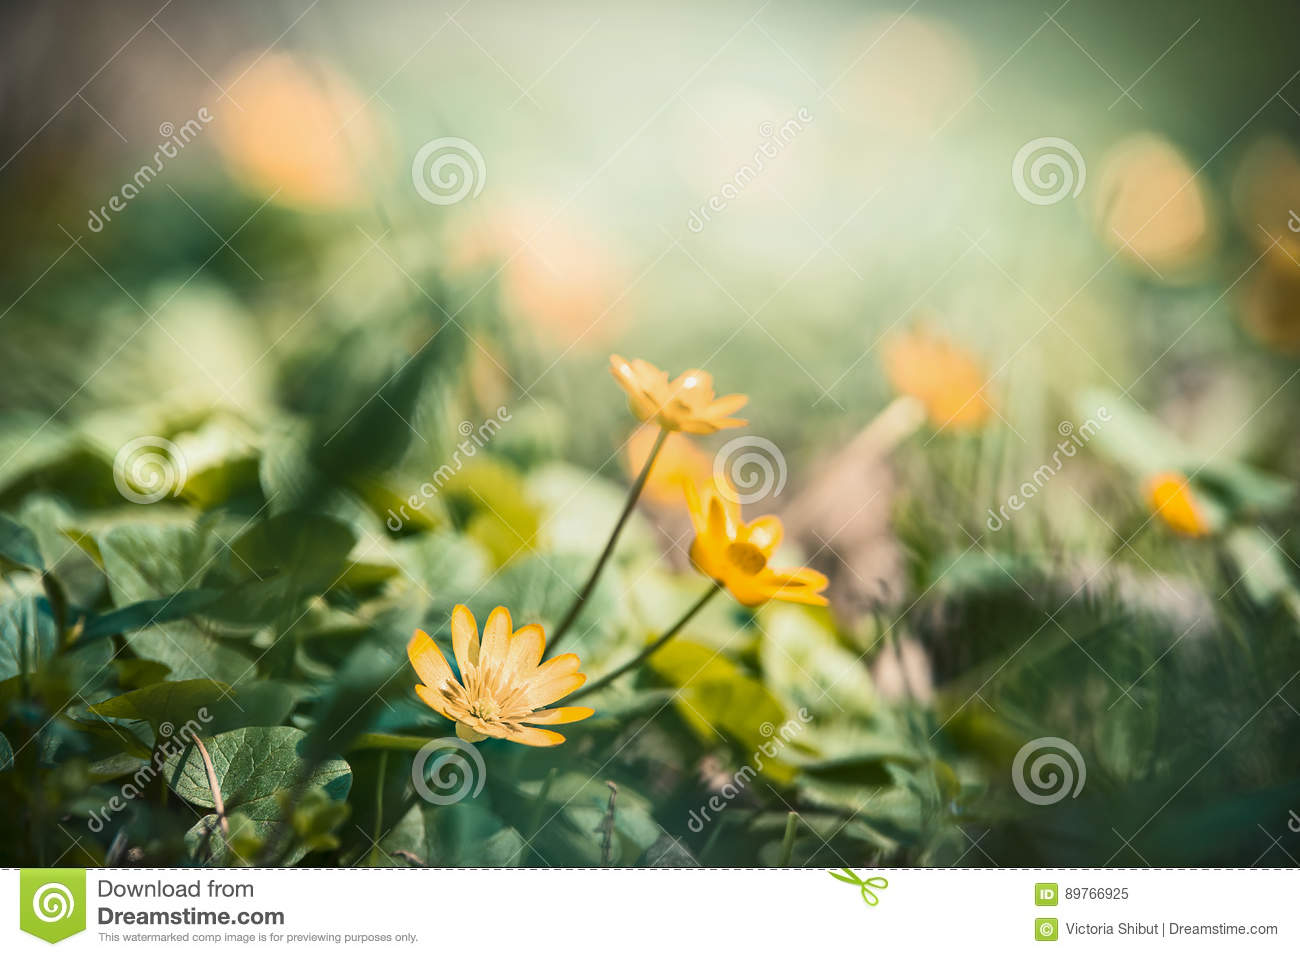 Outdoor Nature Background With Pretty Yellow Flowers Stock Image